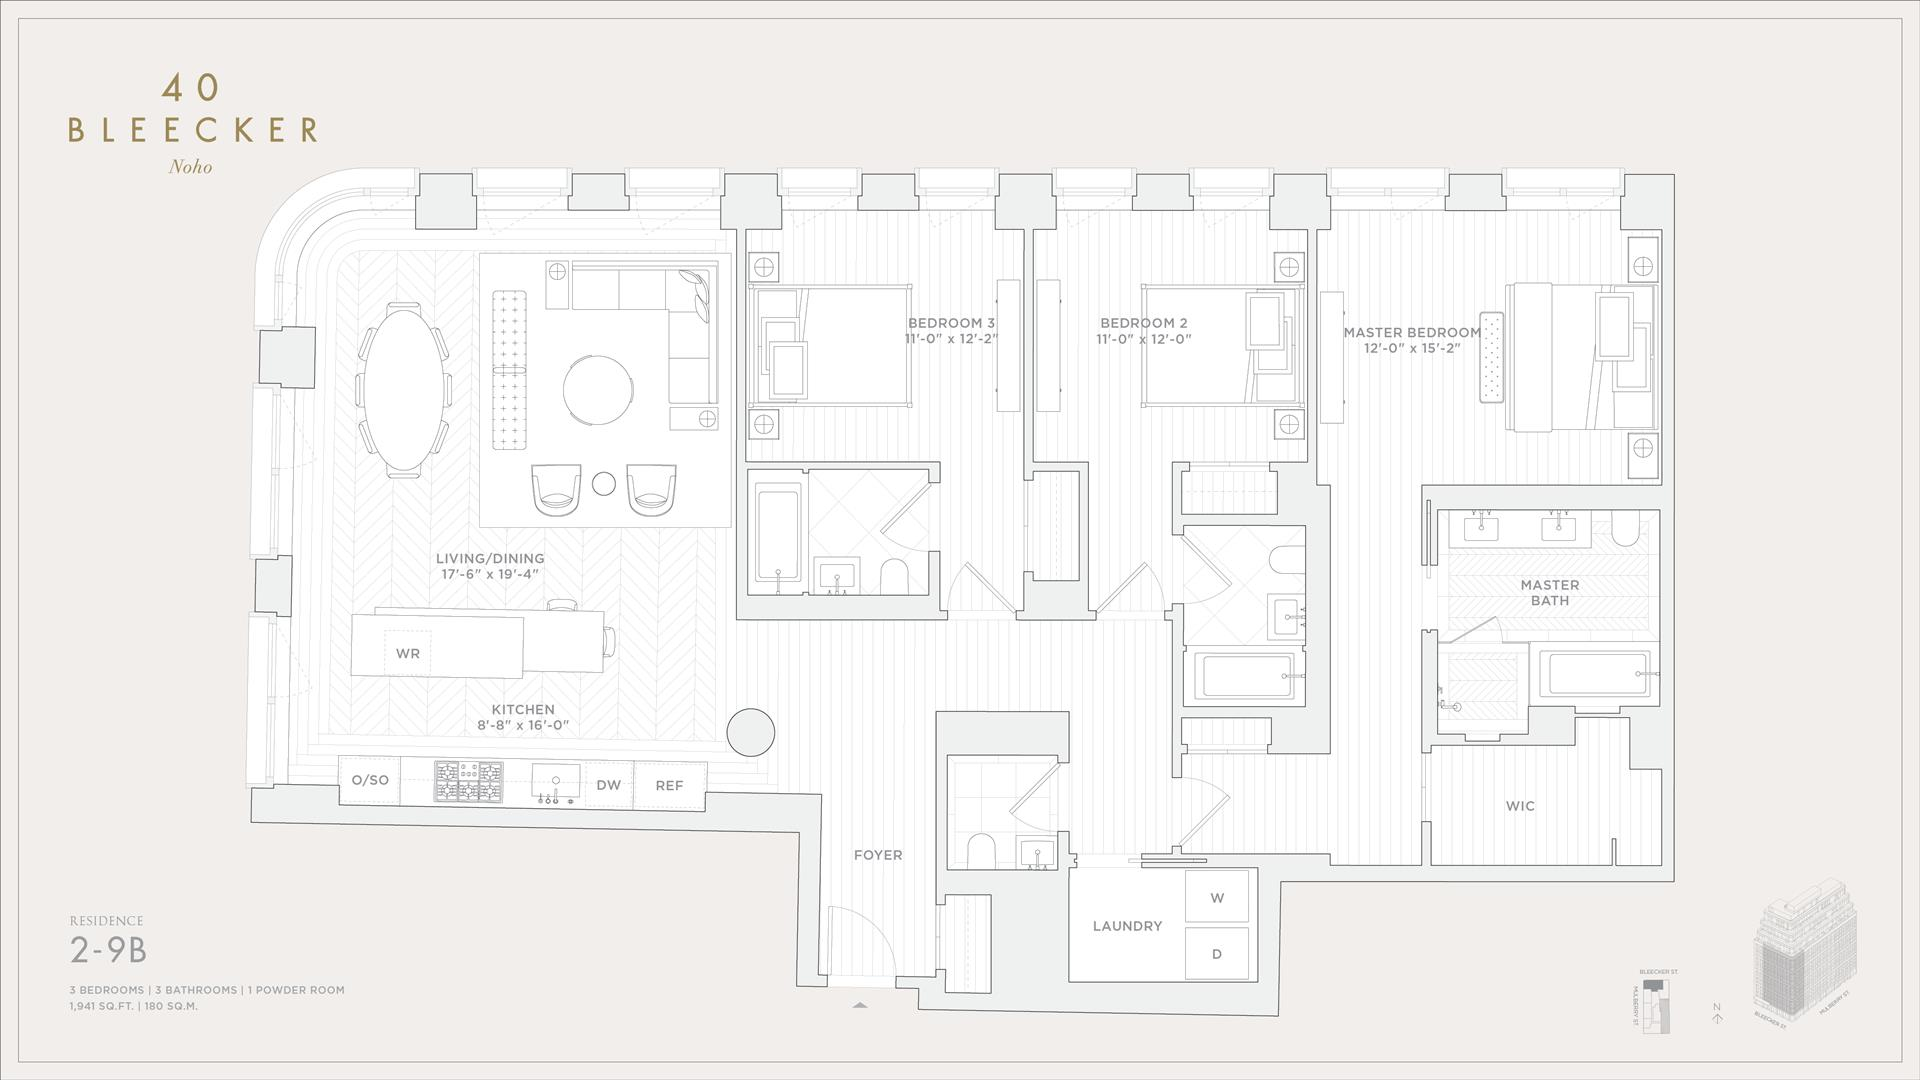 Floor plan of 40 Bleecker St, 9B - NoHo, New York